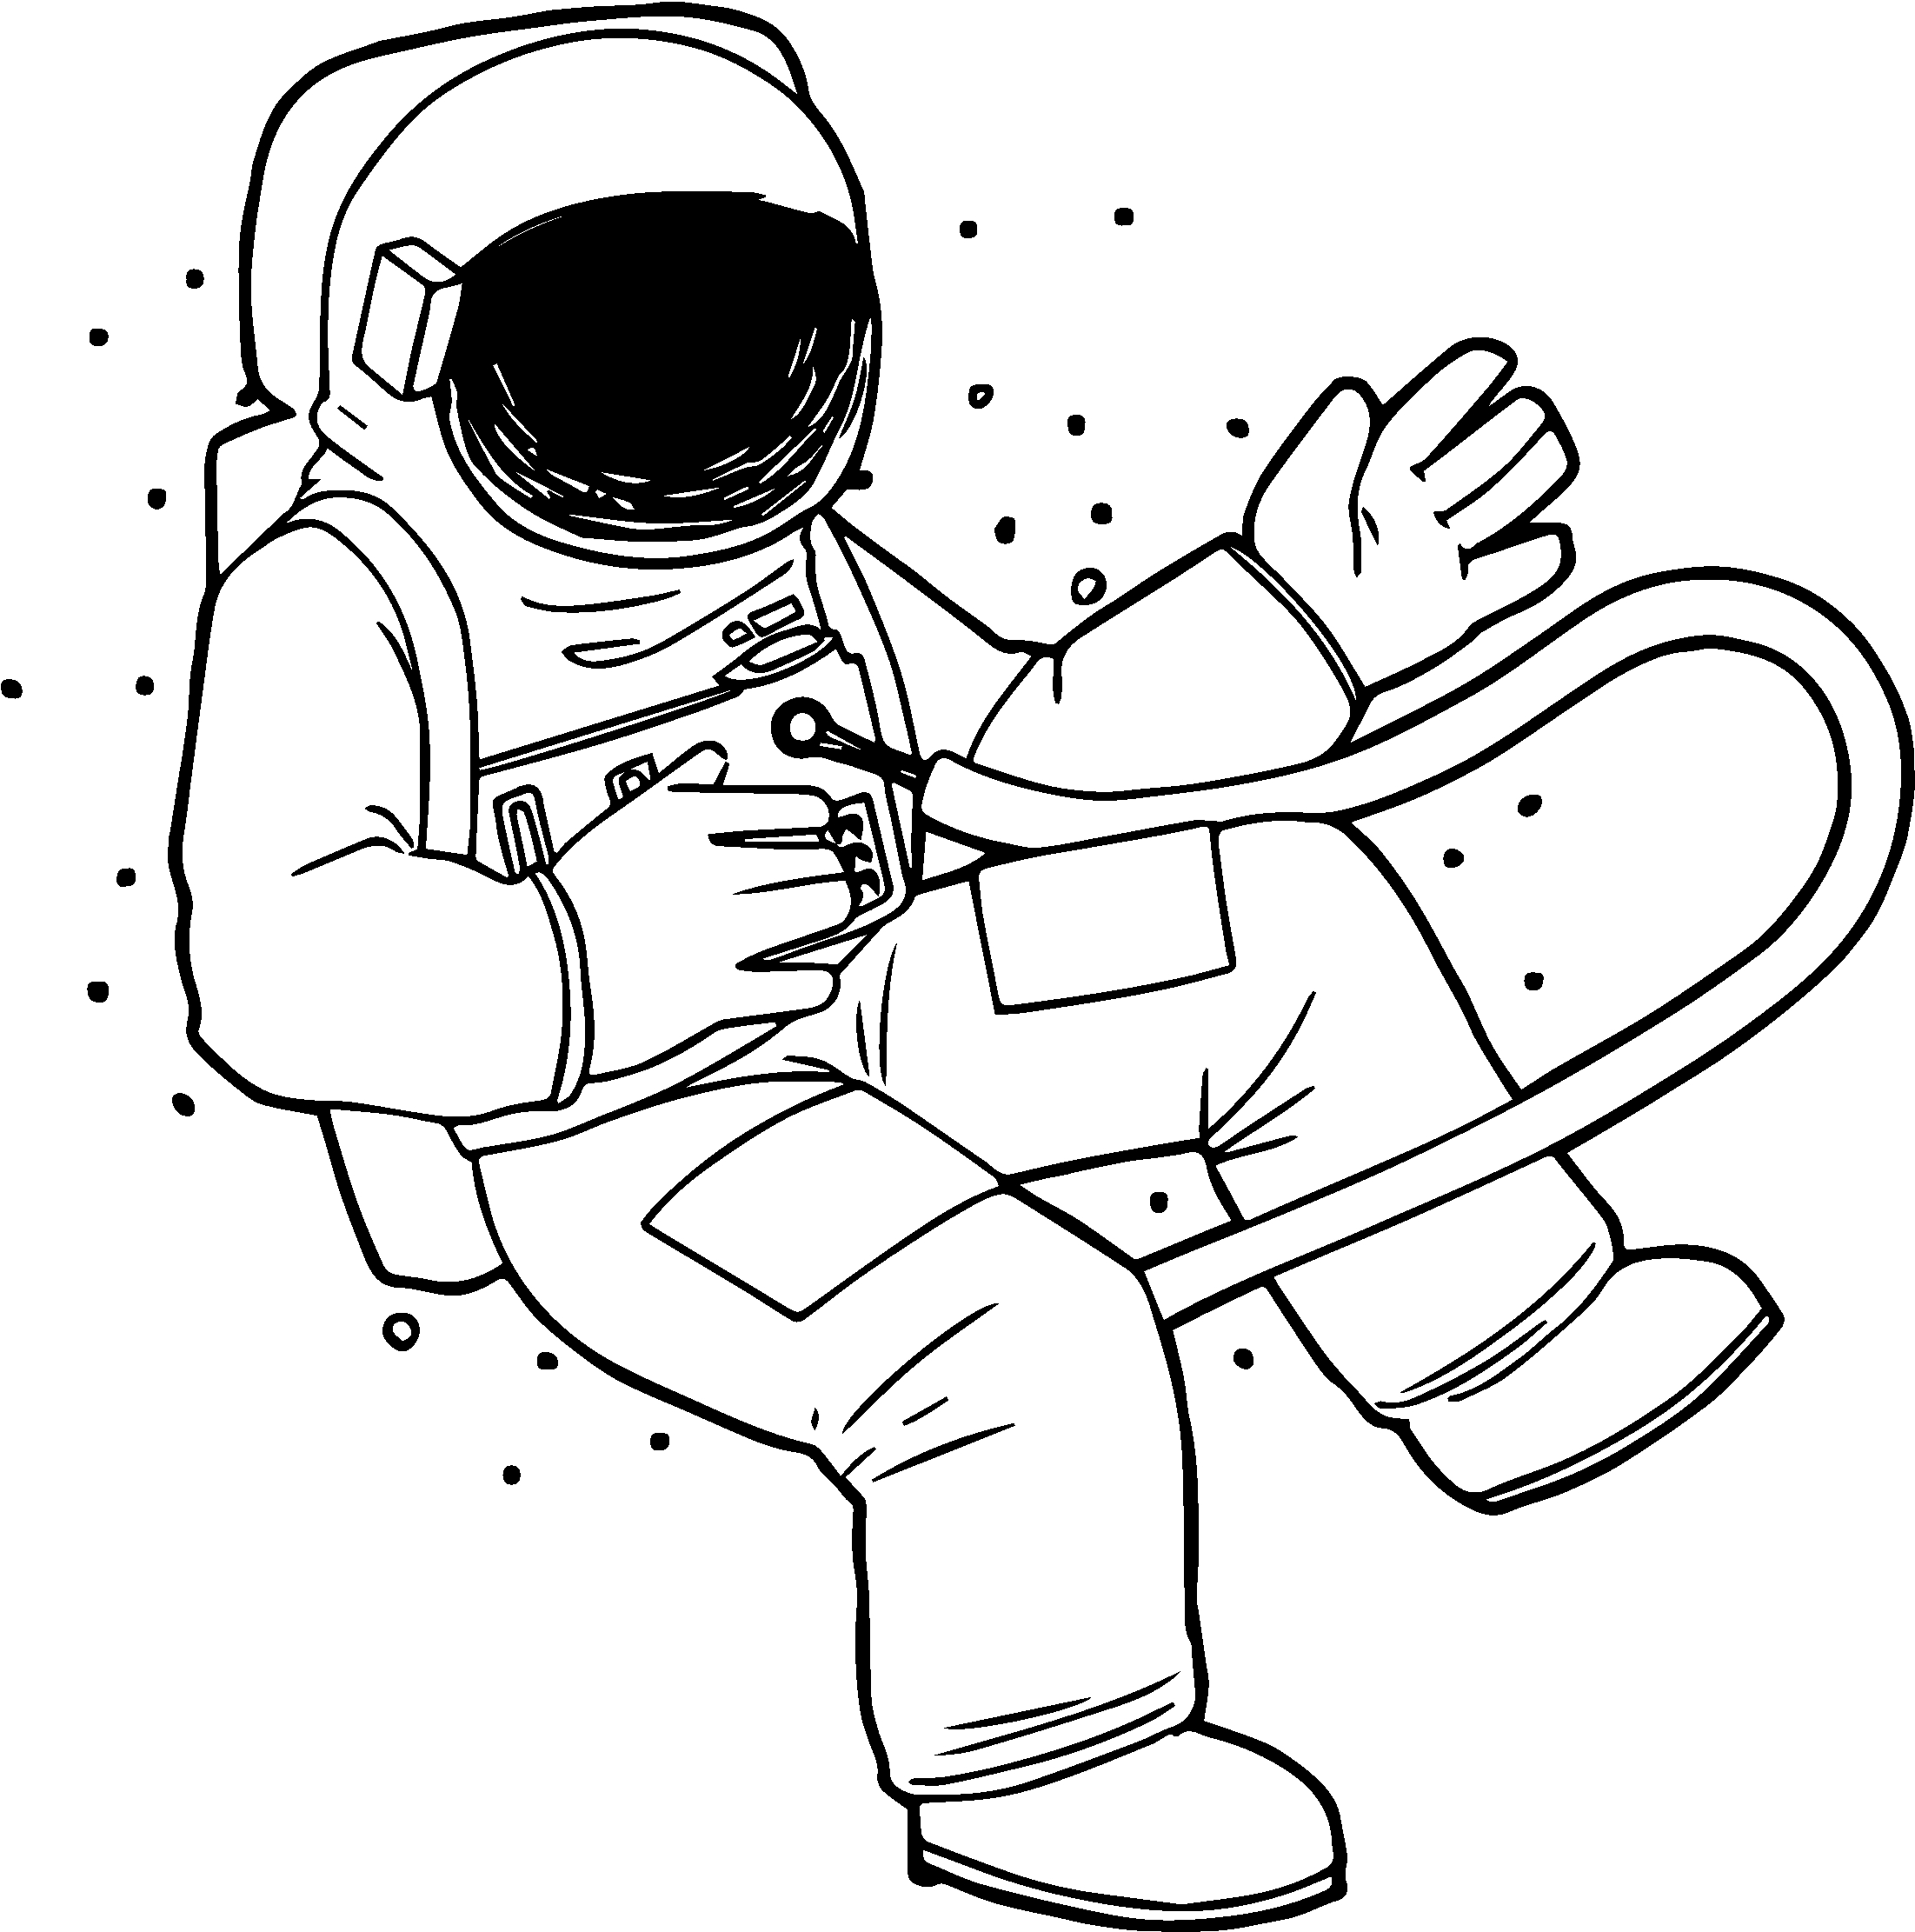 astronaut coloring pages - astronaut space fly coloring page